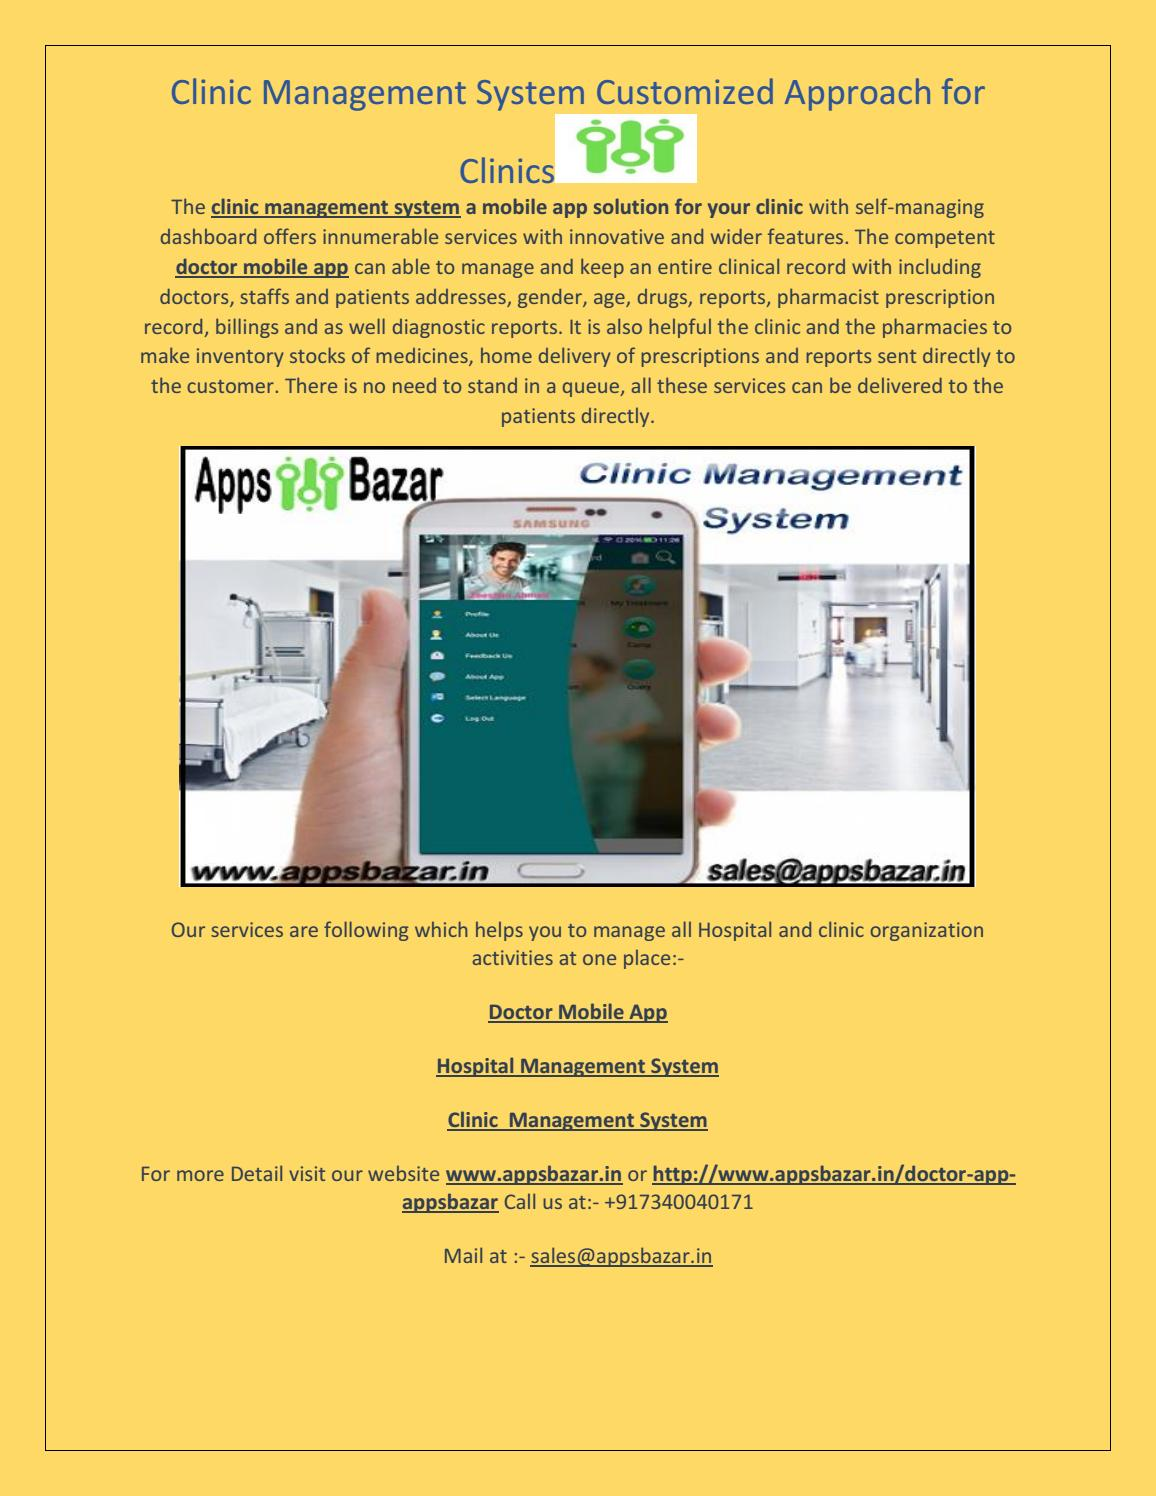 Clinic Management System Customized Approach for Clinics by